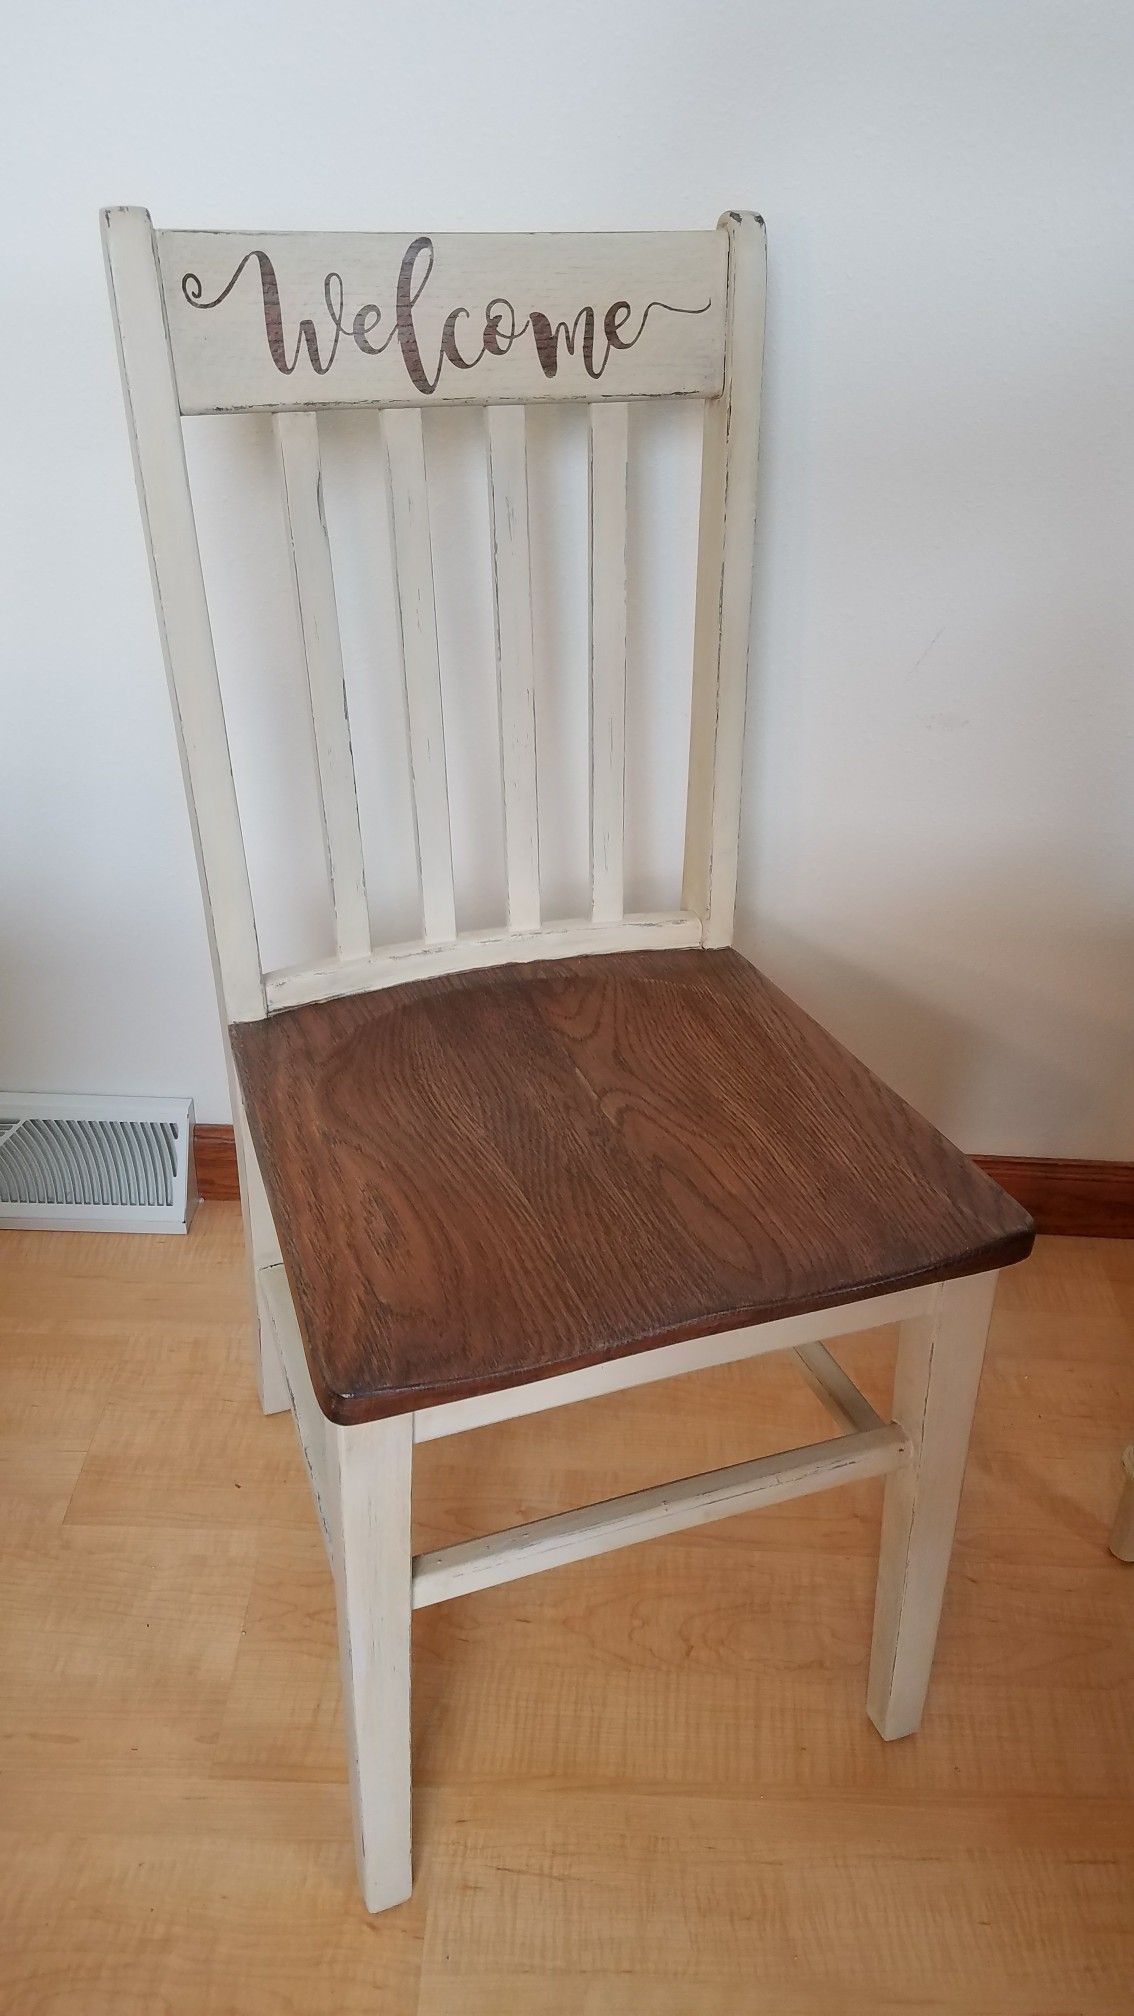 Refurbished Chairs Wooden Oak Welcome Chair Refurbished Debs Projects Diy Bedroom